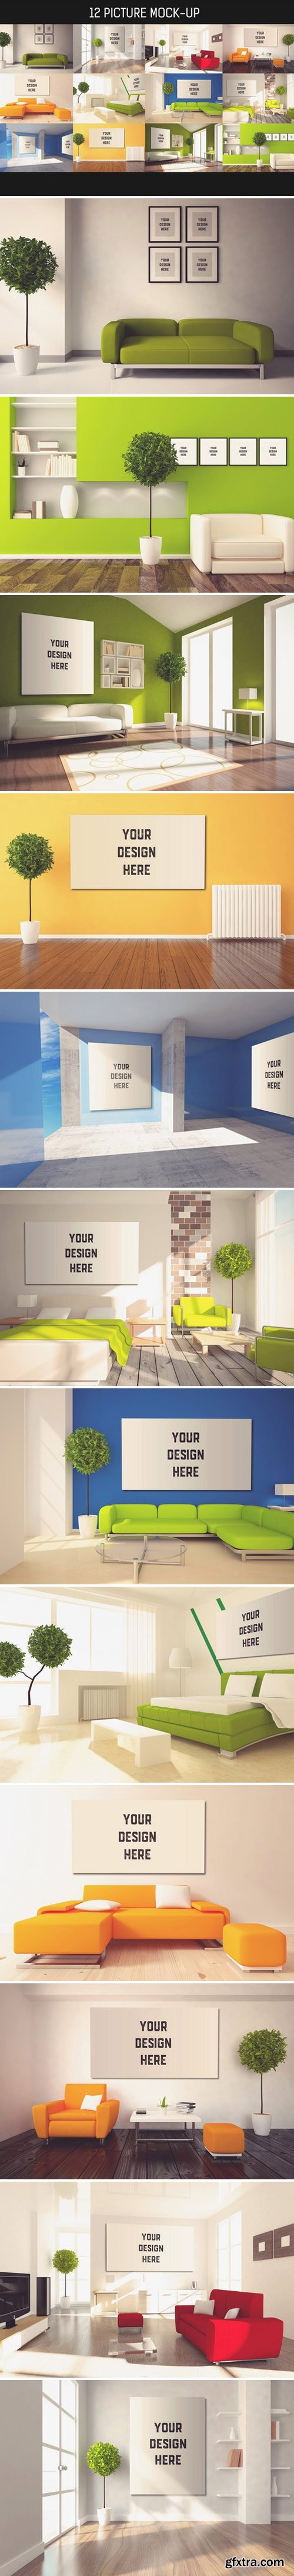 CM - 12 Picture on Wall Mock-up Pack#4 1586270